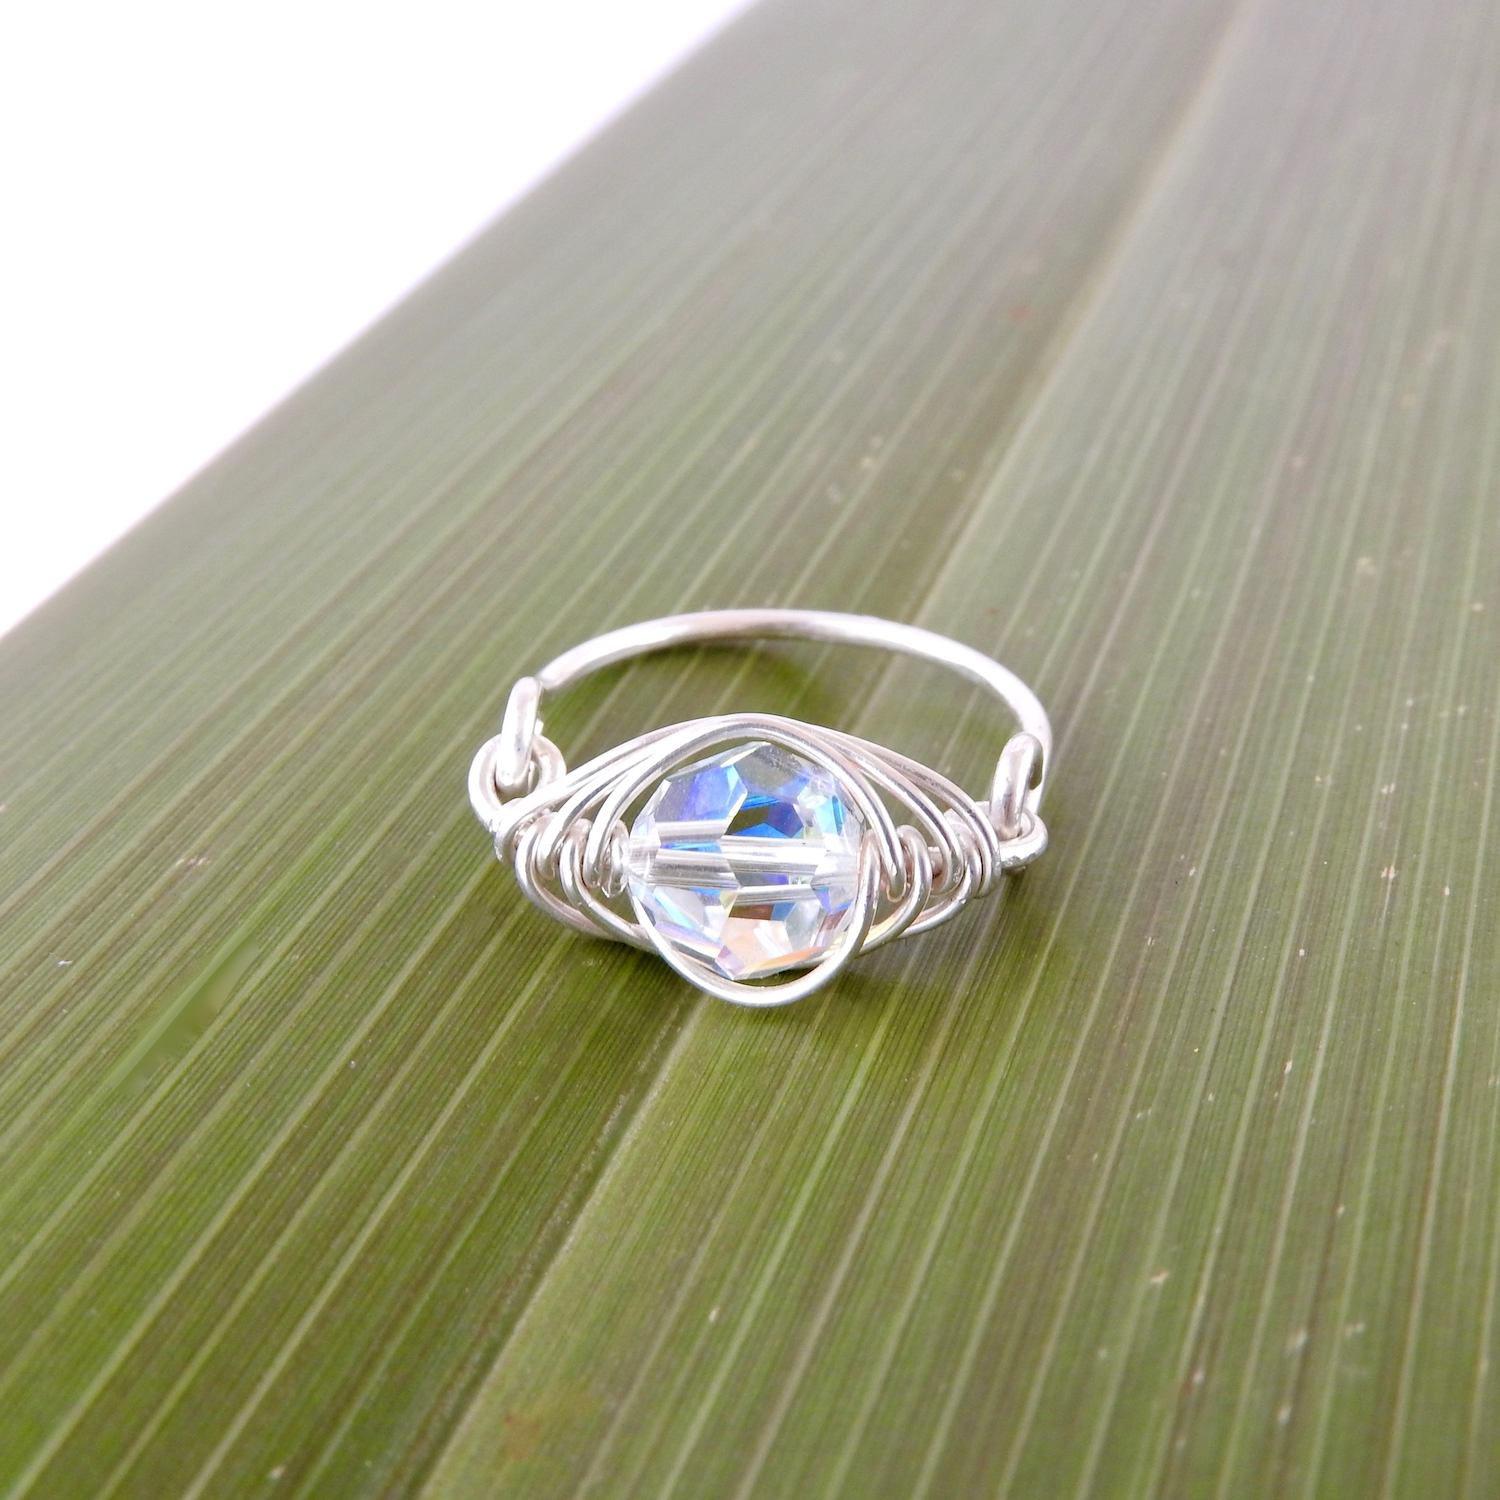 Iridescent Clear AB Swarovski Crystal used as April birthstone 'diamond' in this handmade birthstone ring in eco silver